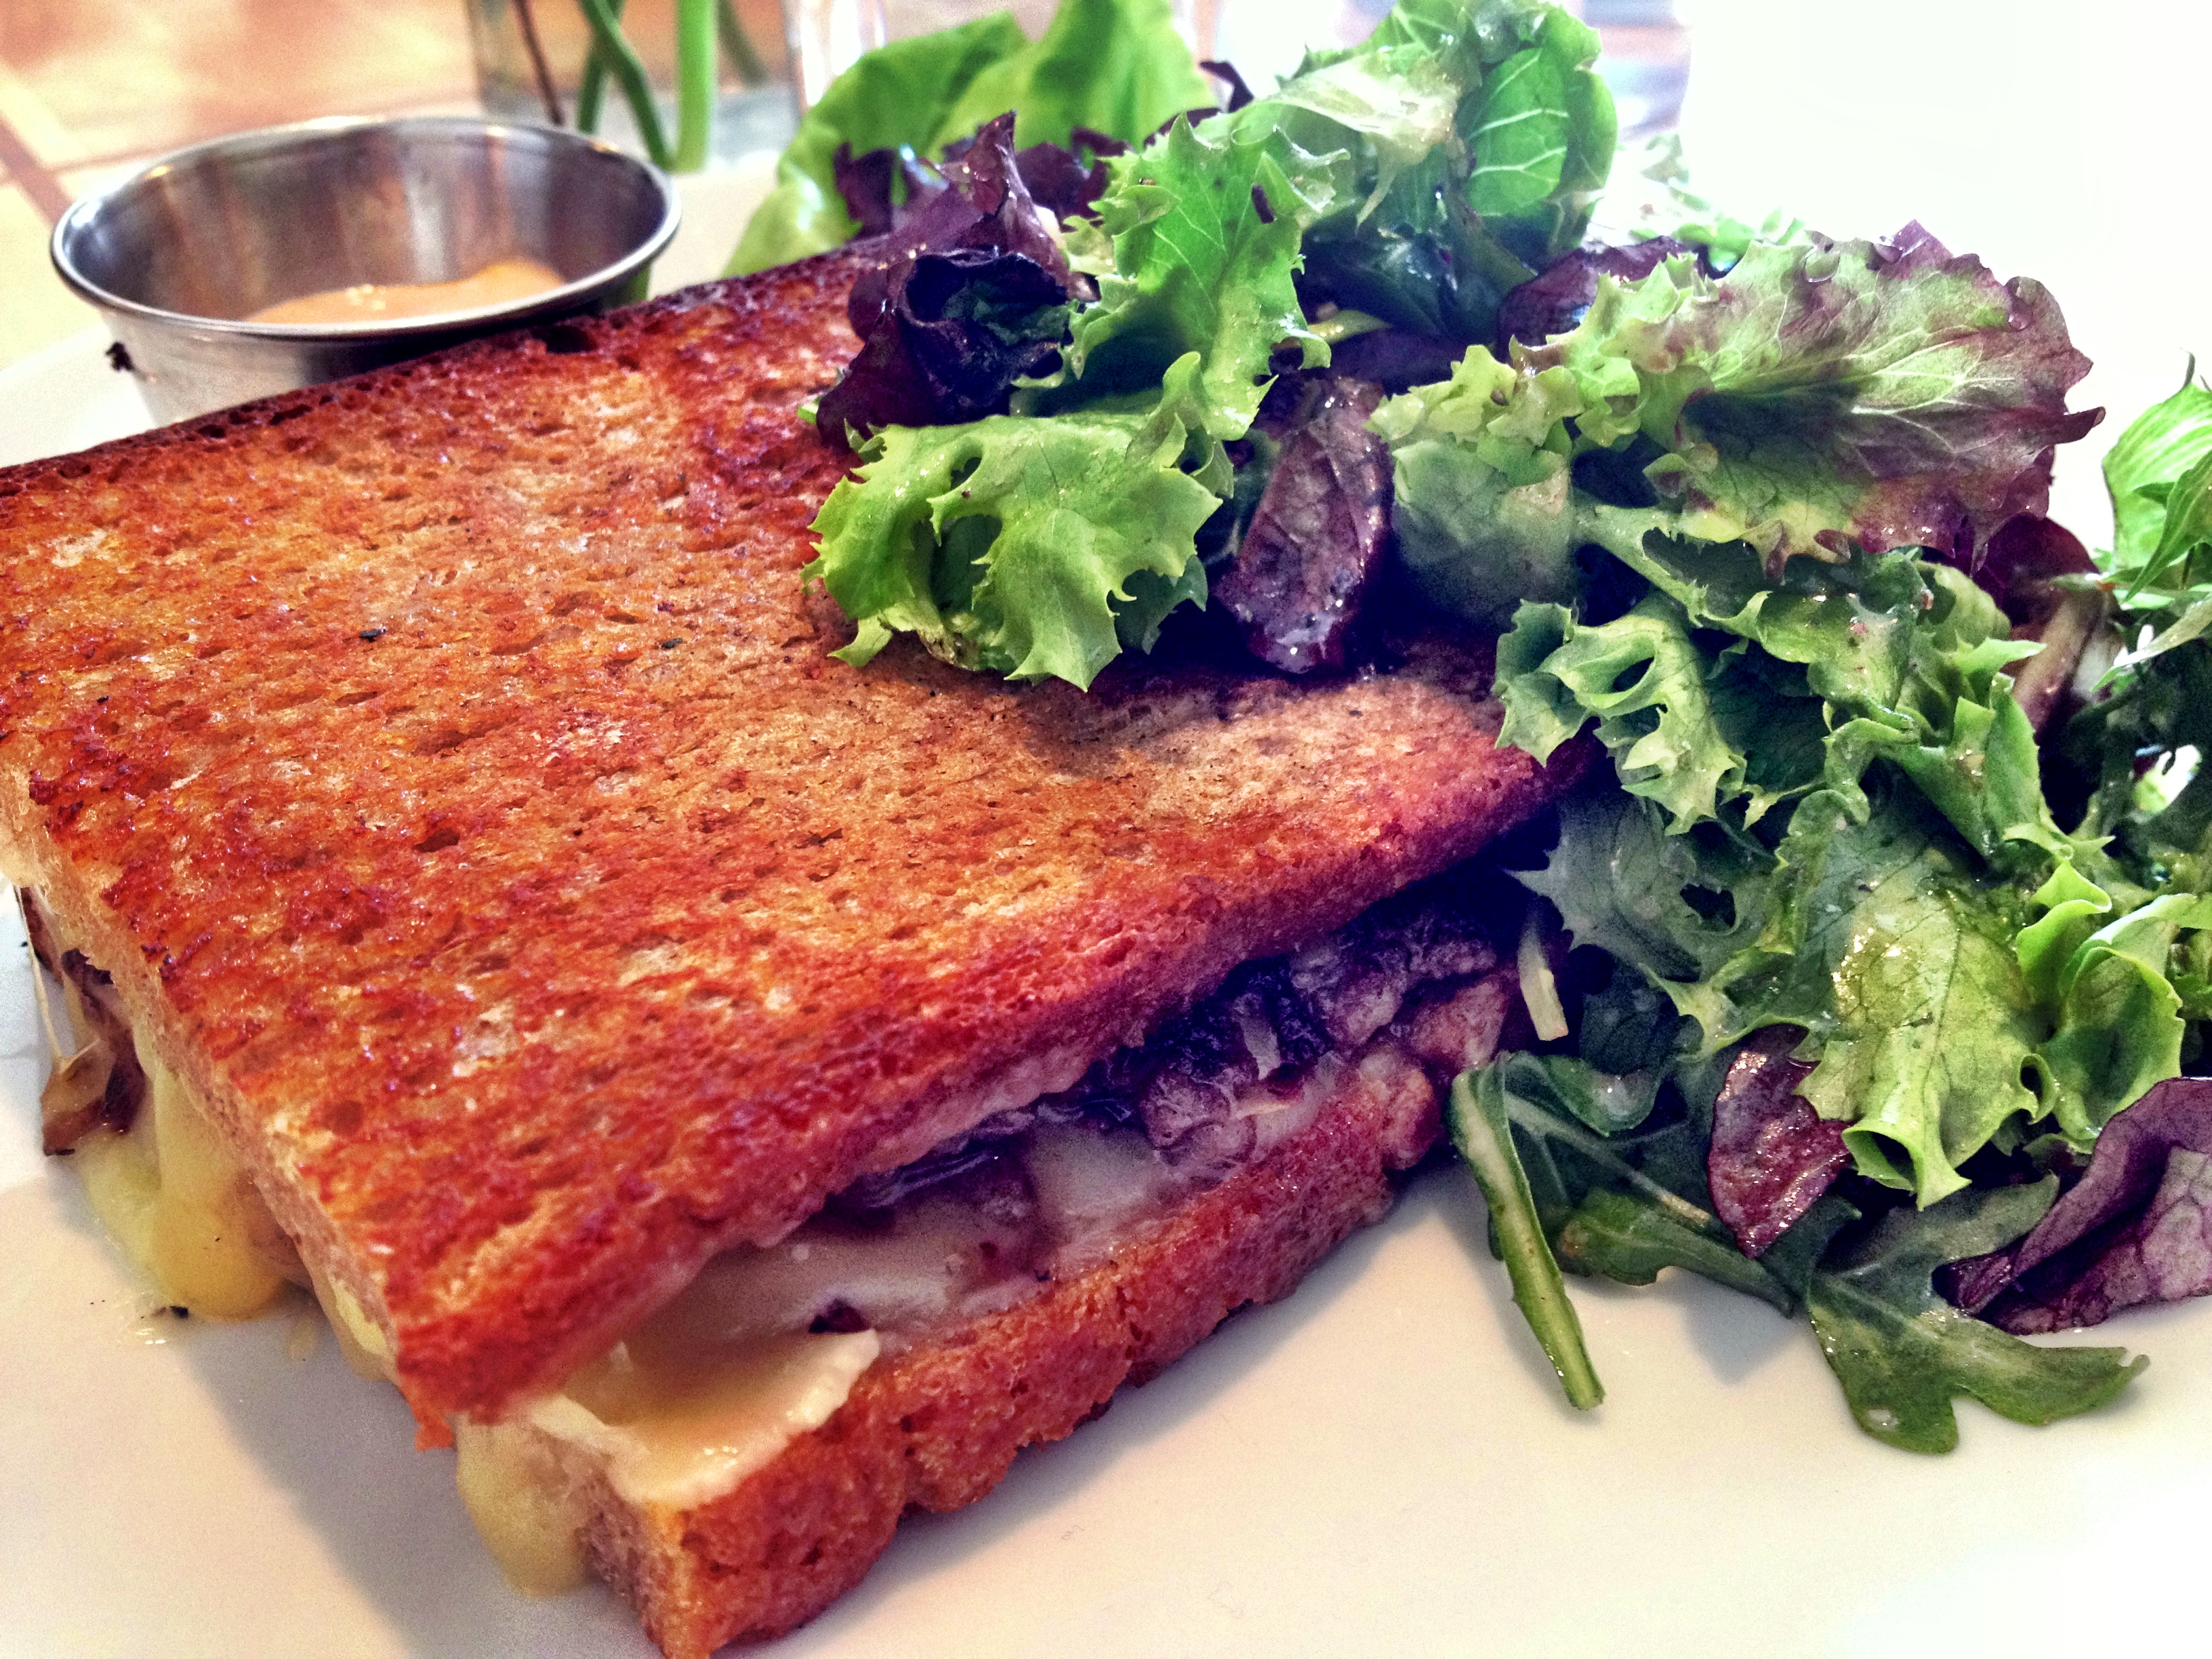 parish hall, patty melt, williamsburg, brooklyn, lunch, brunch, dinner, food